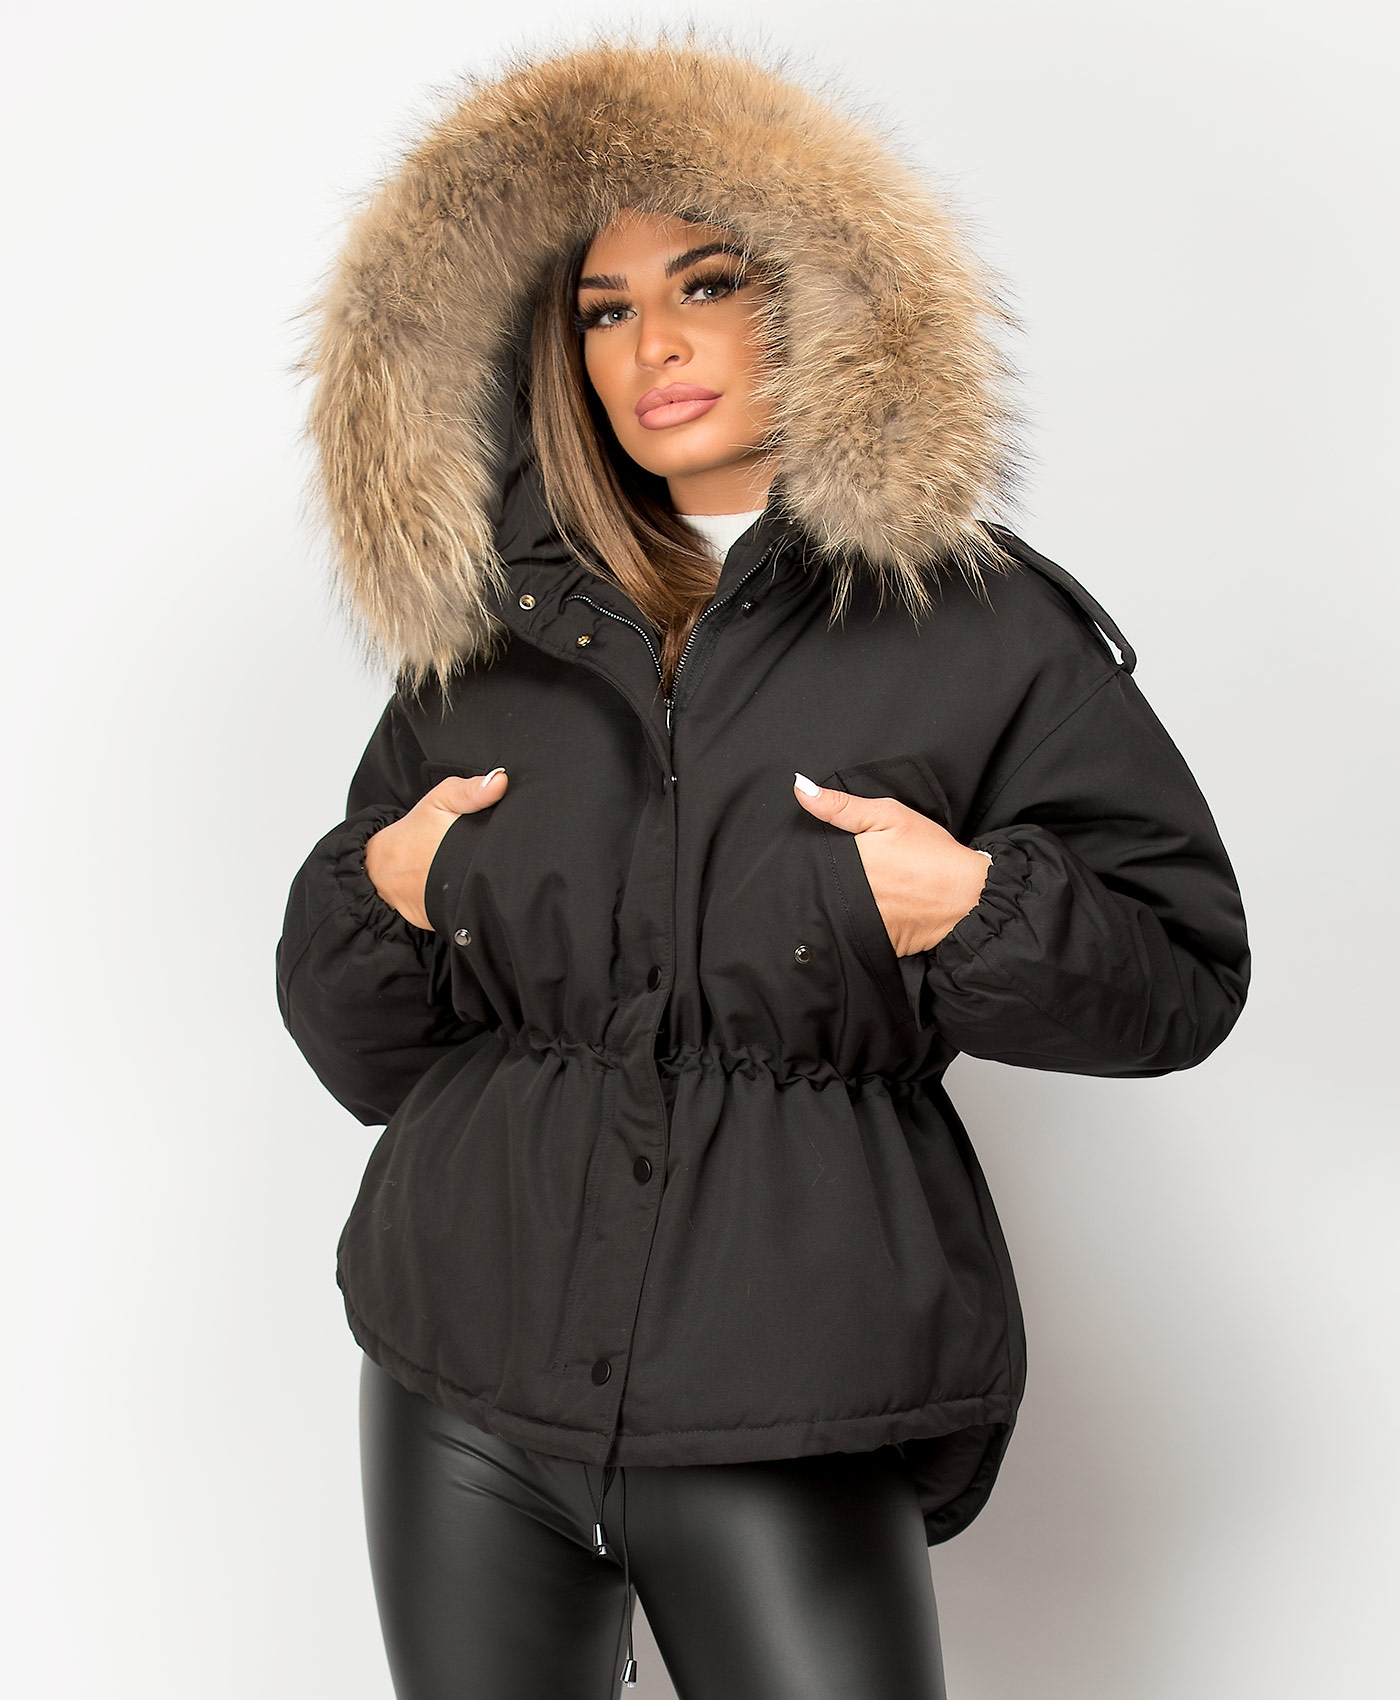 Black-Oversized-Fit-Natural-Real-Fur-Padded-Fishtail-Parka-Jacket-1